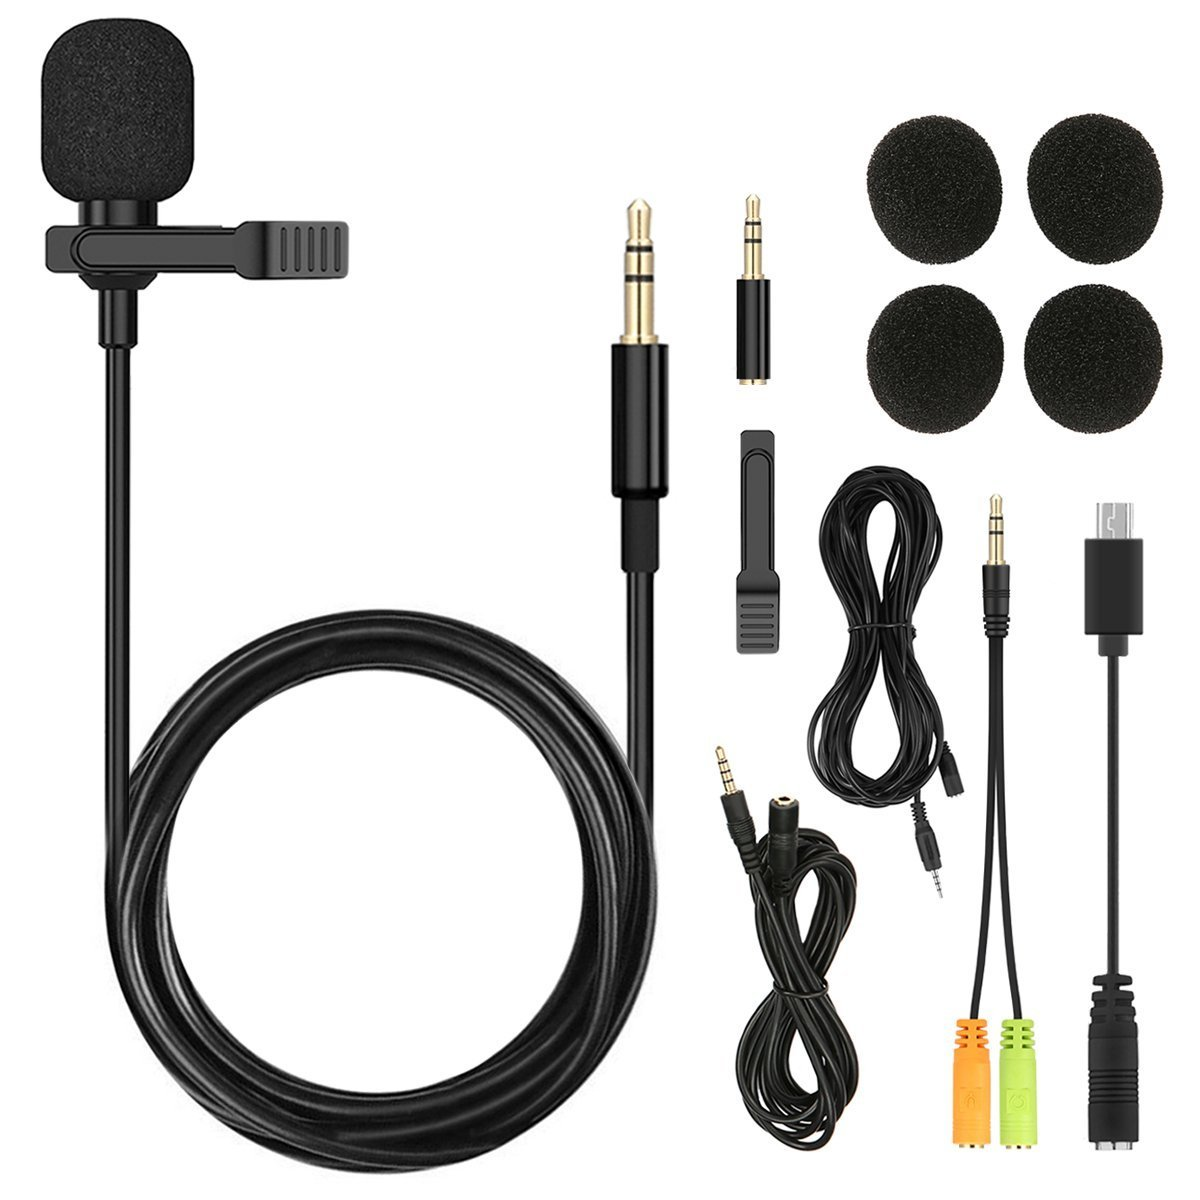 Professional Lavalier Lapel Microphone NASUM 3.5MM Clip-on Omnidirectional Condenser Microphone for iPhone,Android,PC,Laptop,Youtube,Interview,Video Recording,Studio